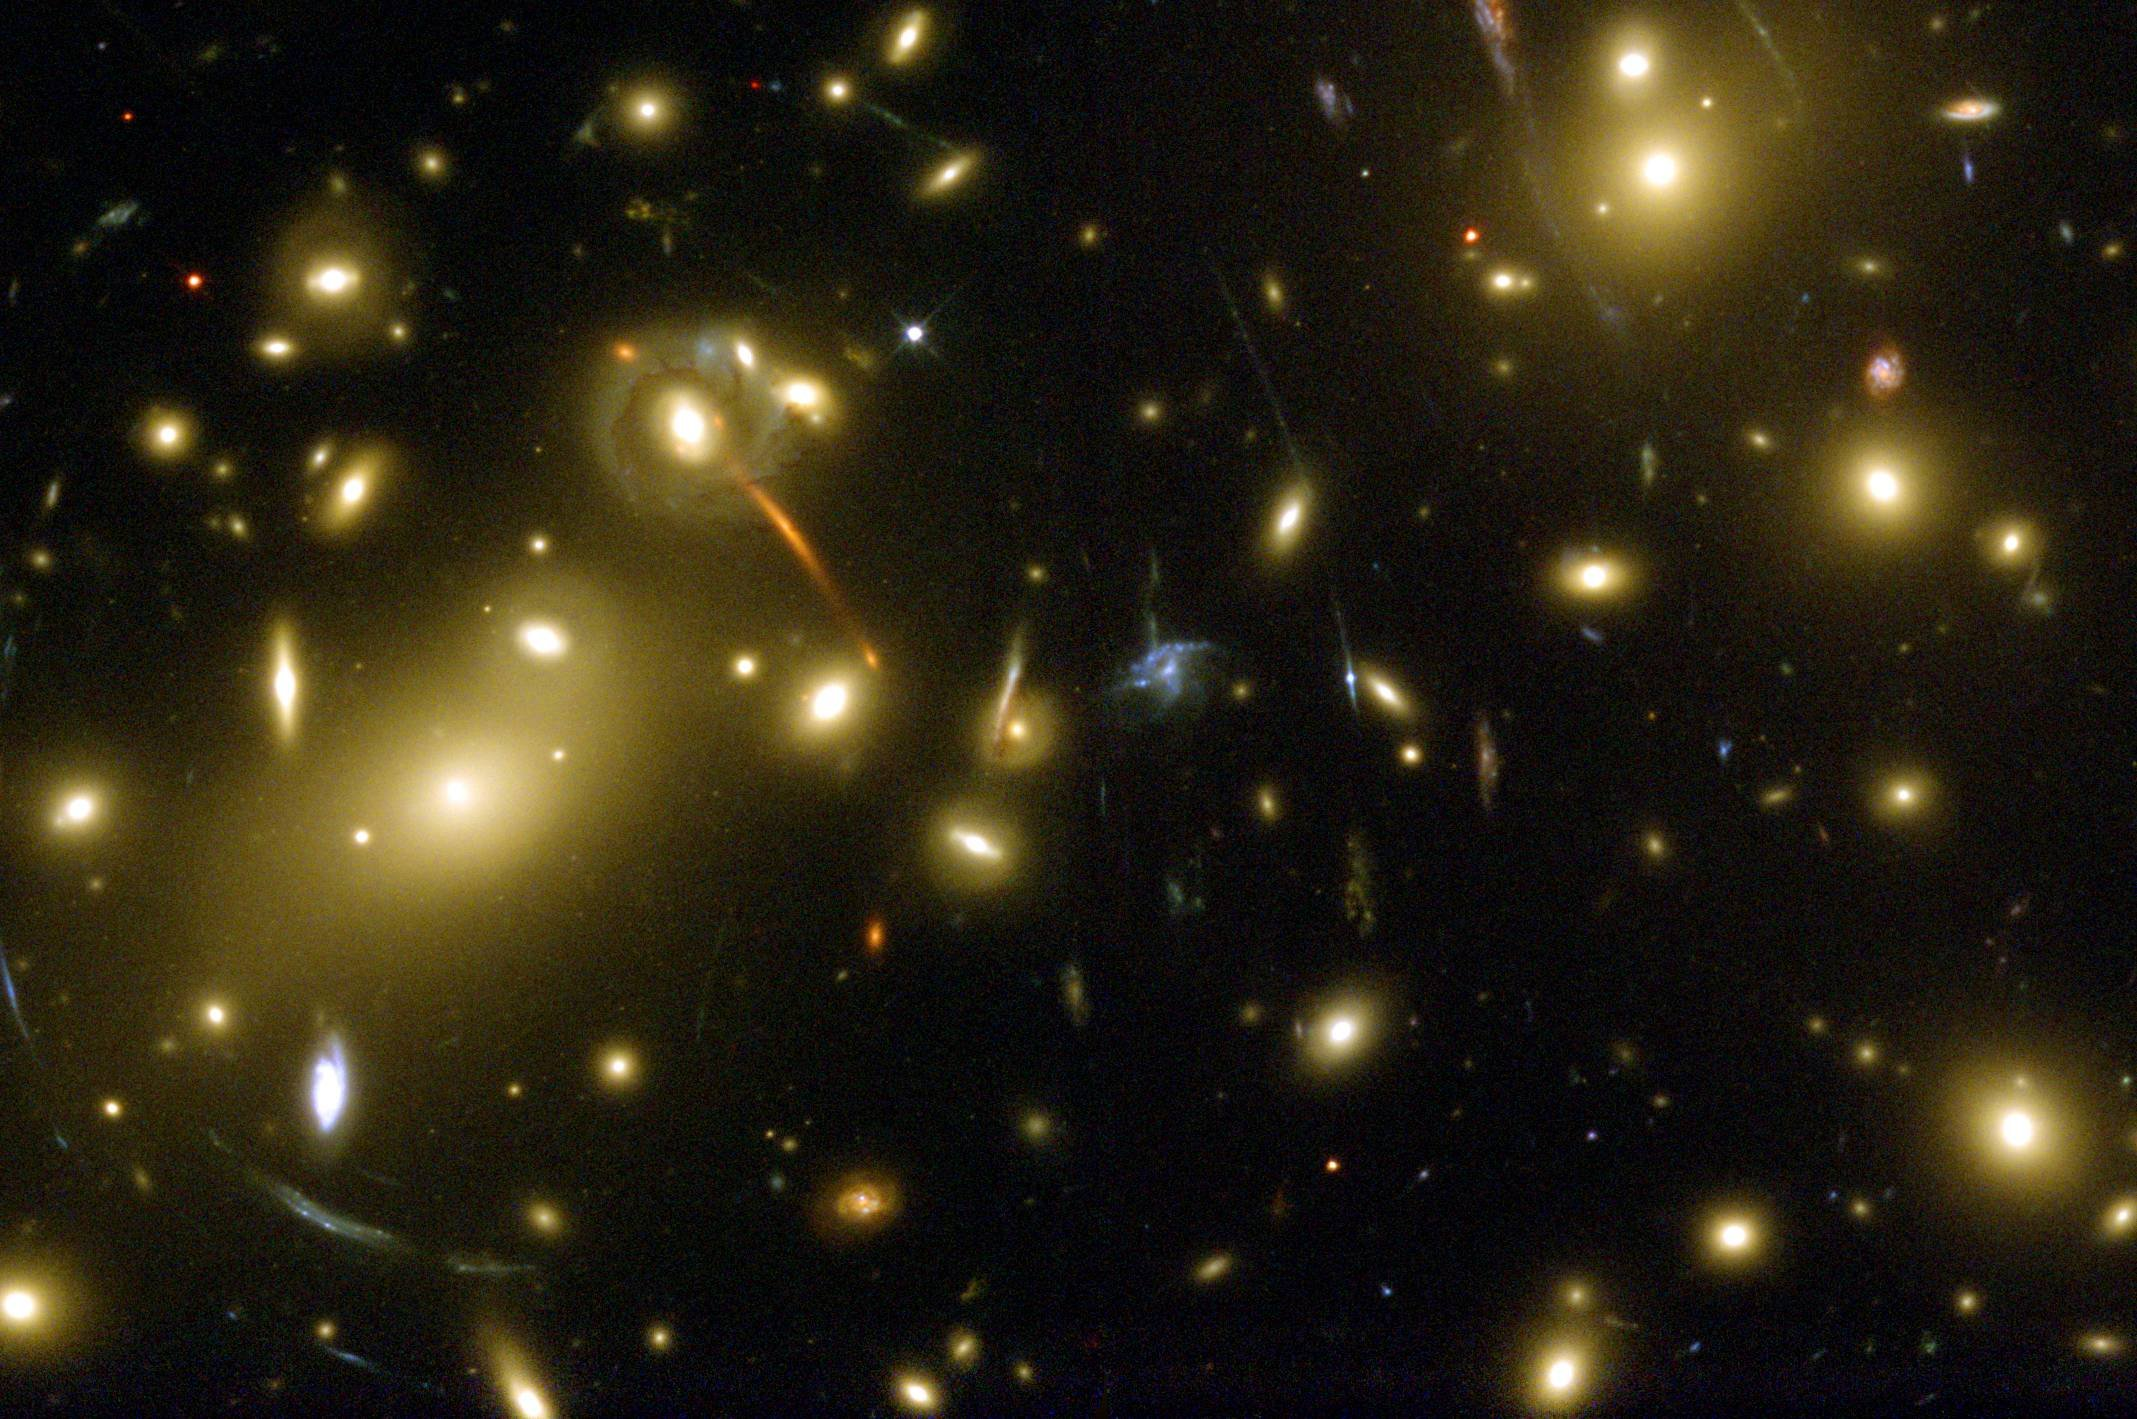 Abell 2218 - Galaxy Cluster